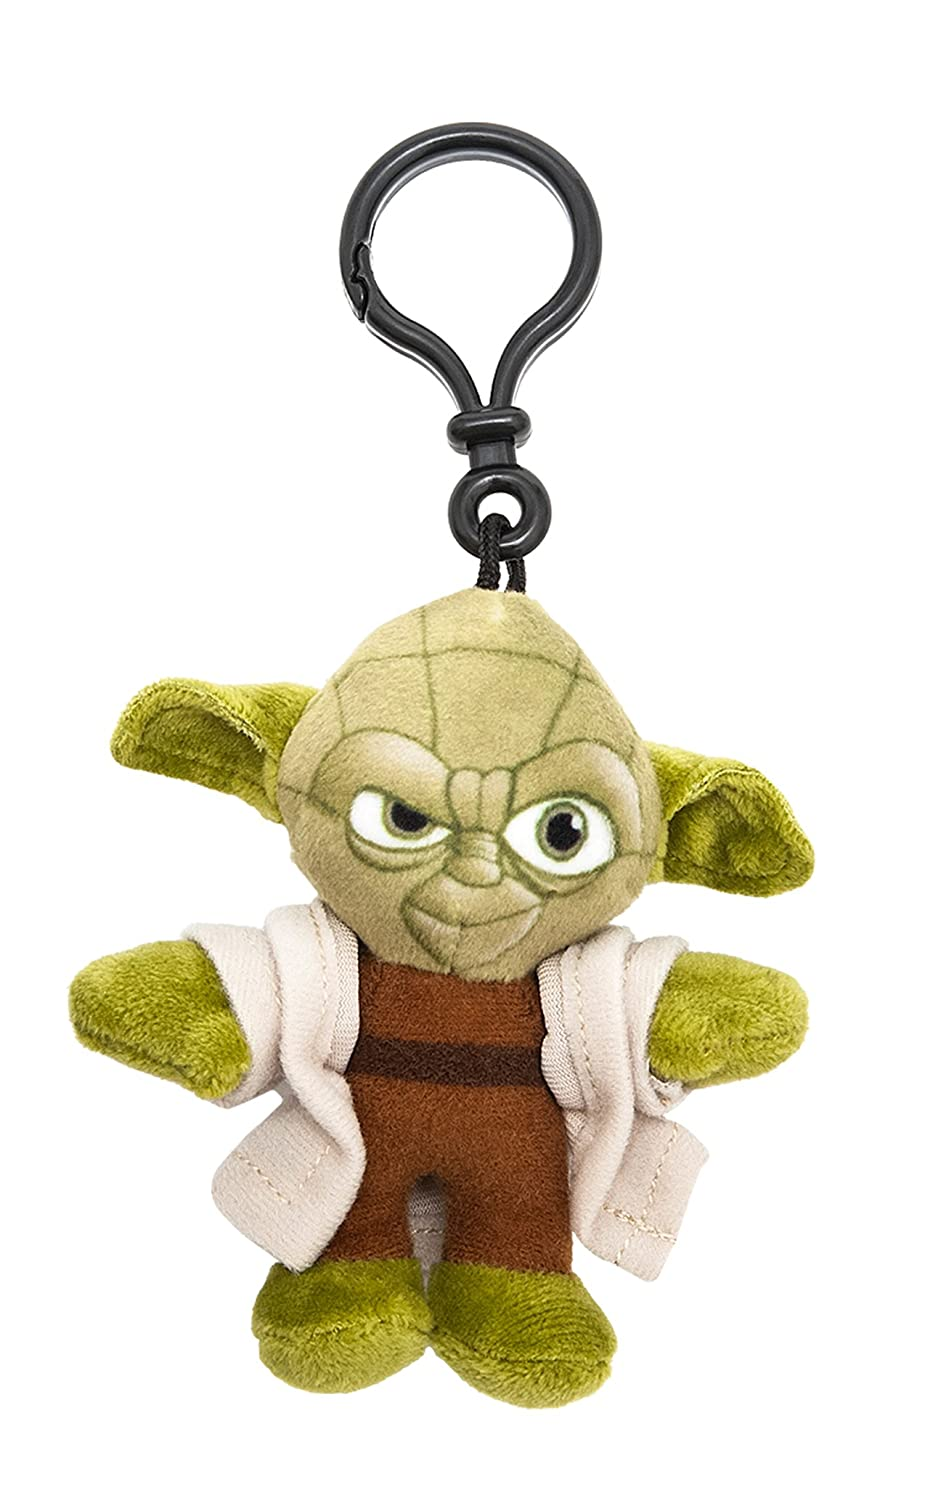 Amazon.com: Joy Toy 1500161 Star Wars Episode VII Yoda Plush ...